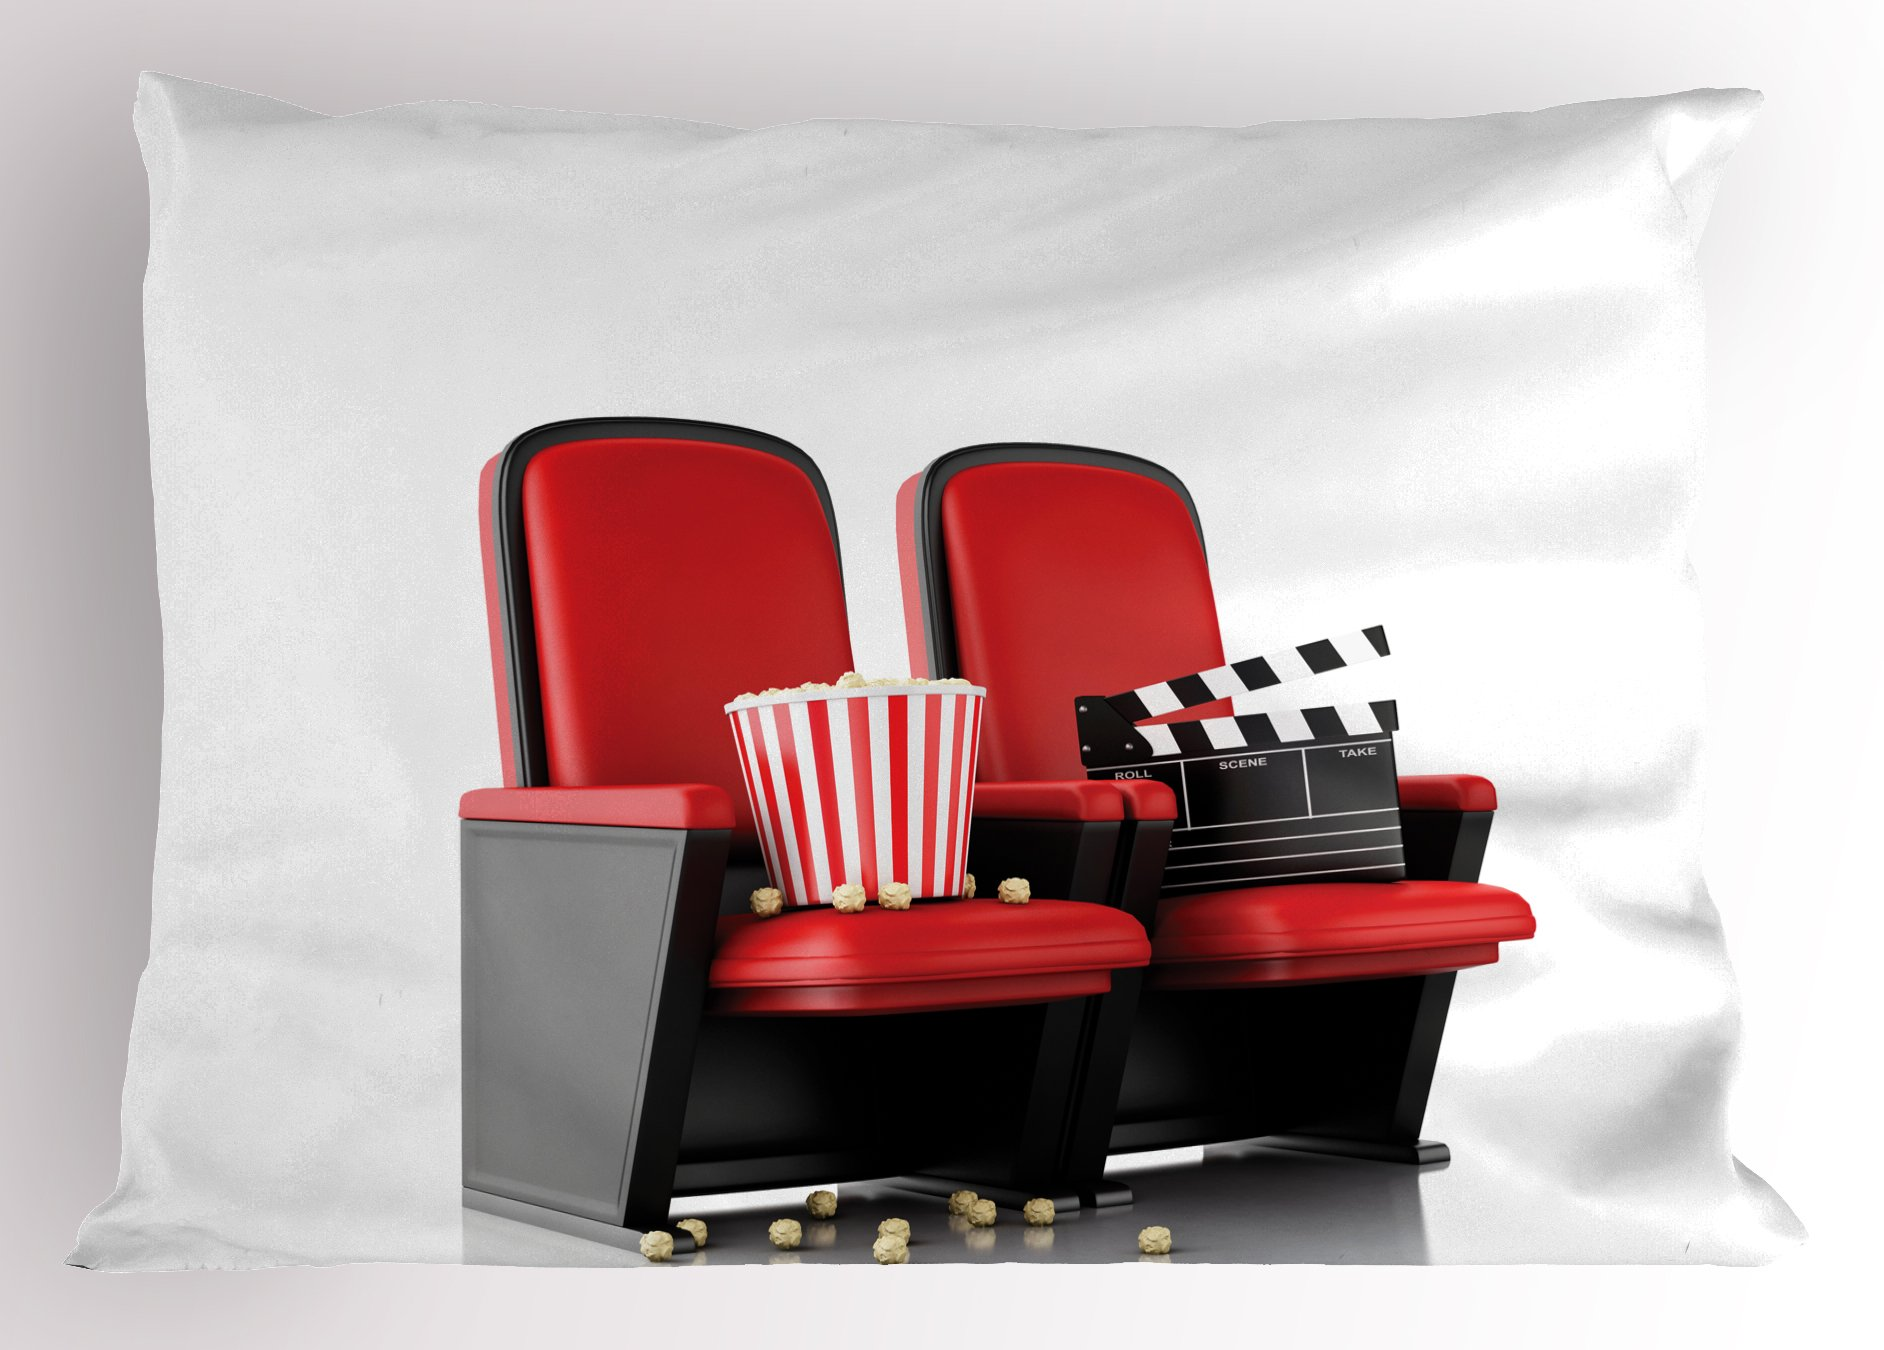 Ambesonne Movie Theater Pillow Sham, 3D Illustration Cinema Concept Clapper Board and Popcorn on Theater Seat, Decorative Standard Queen Size Printed Pillowcase, 30 X 20 inches, Red Black White